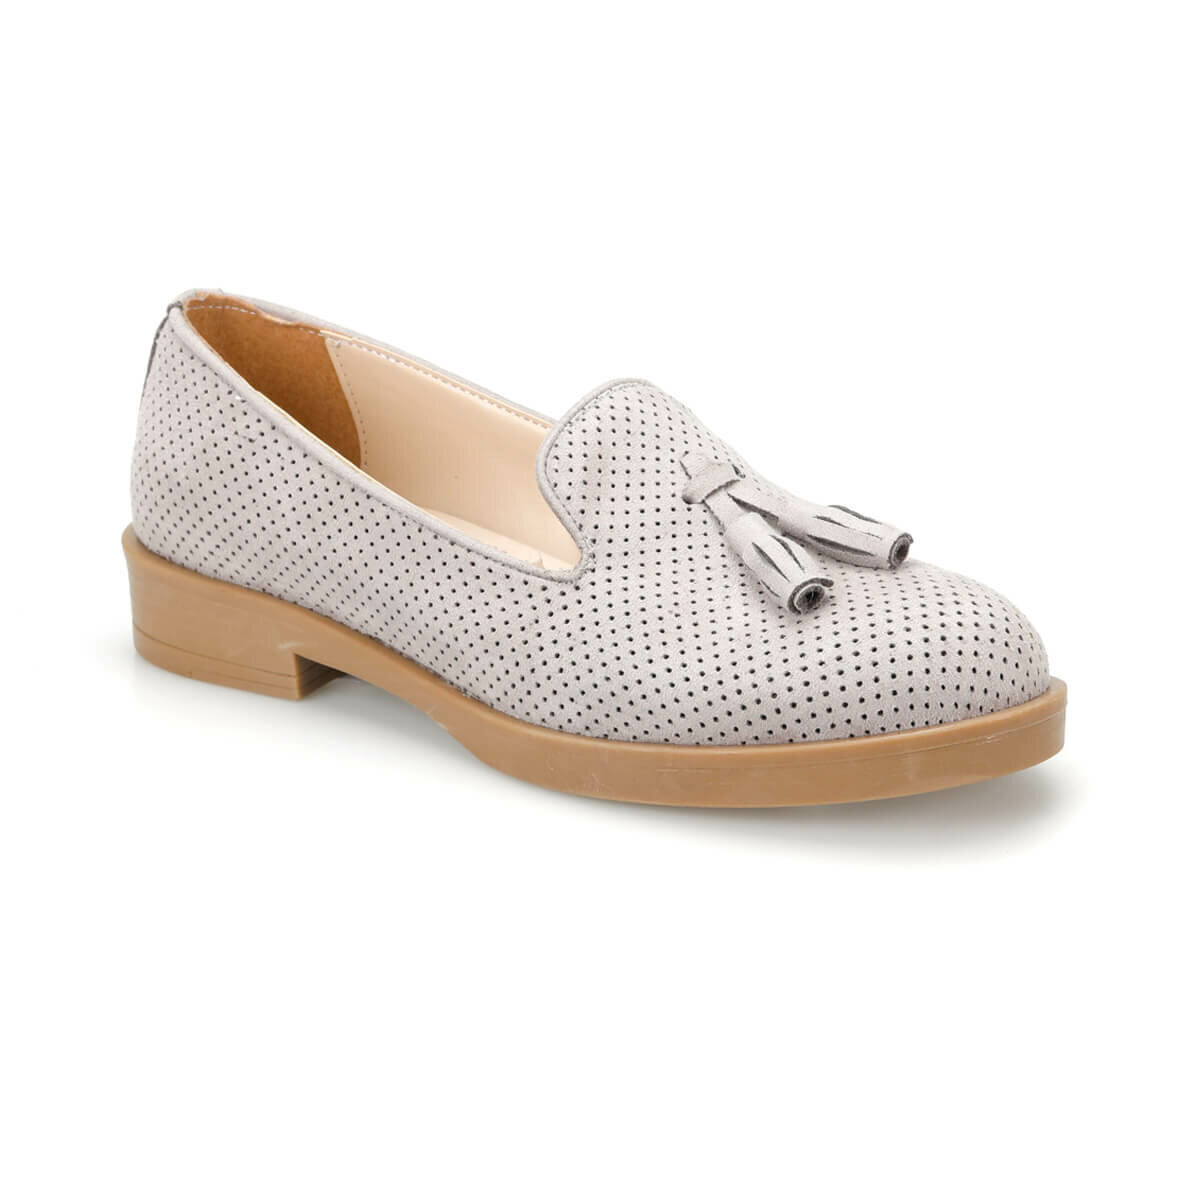 FLO DS19041 Gray Women Loafer Shoes Miss F